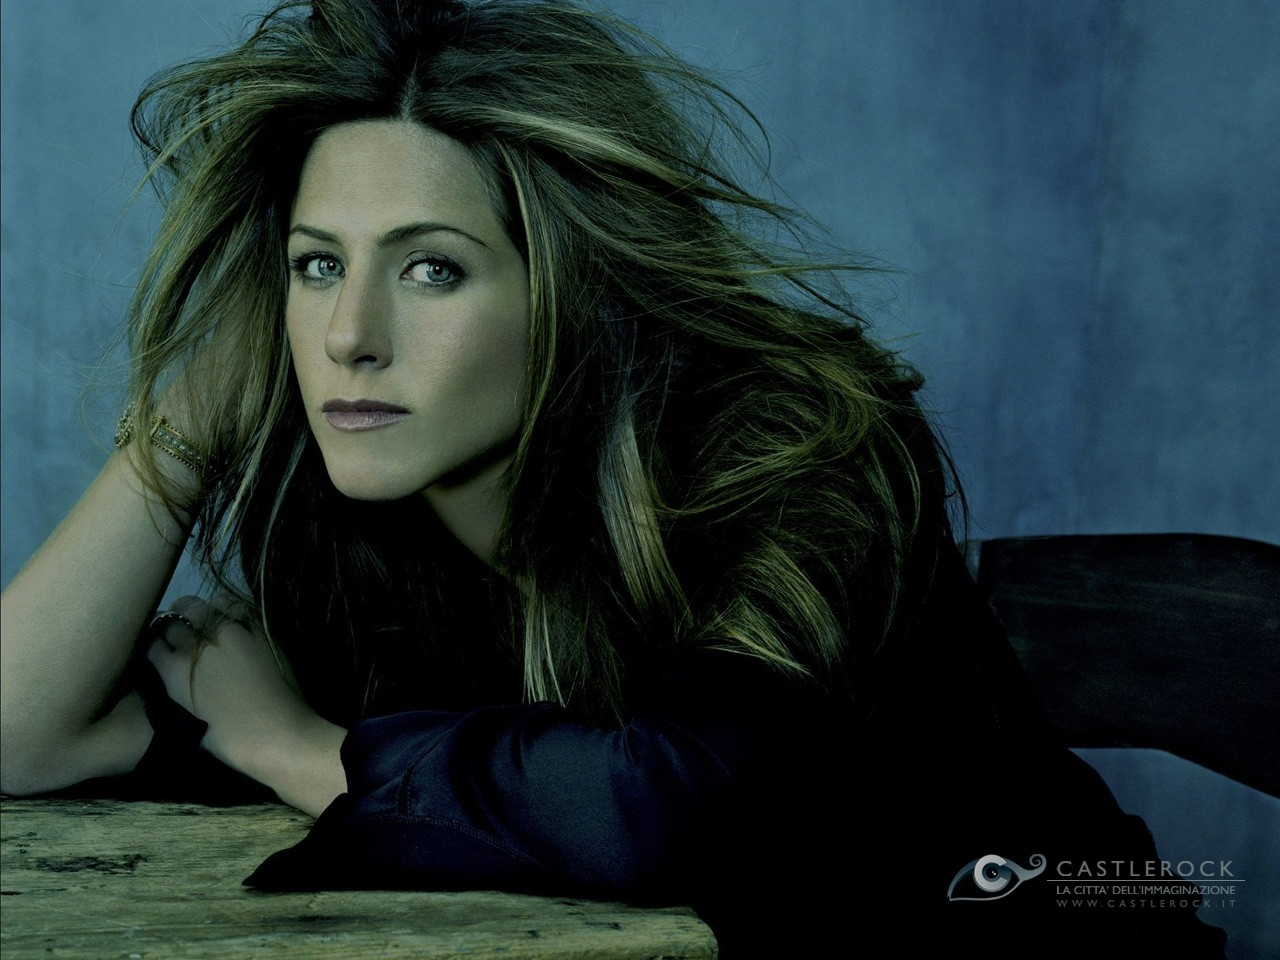 Wallpaper di Jennifer Aniston in versione dark